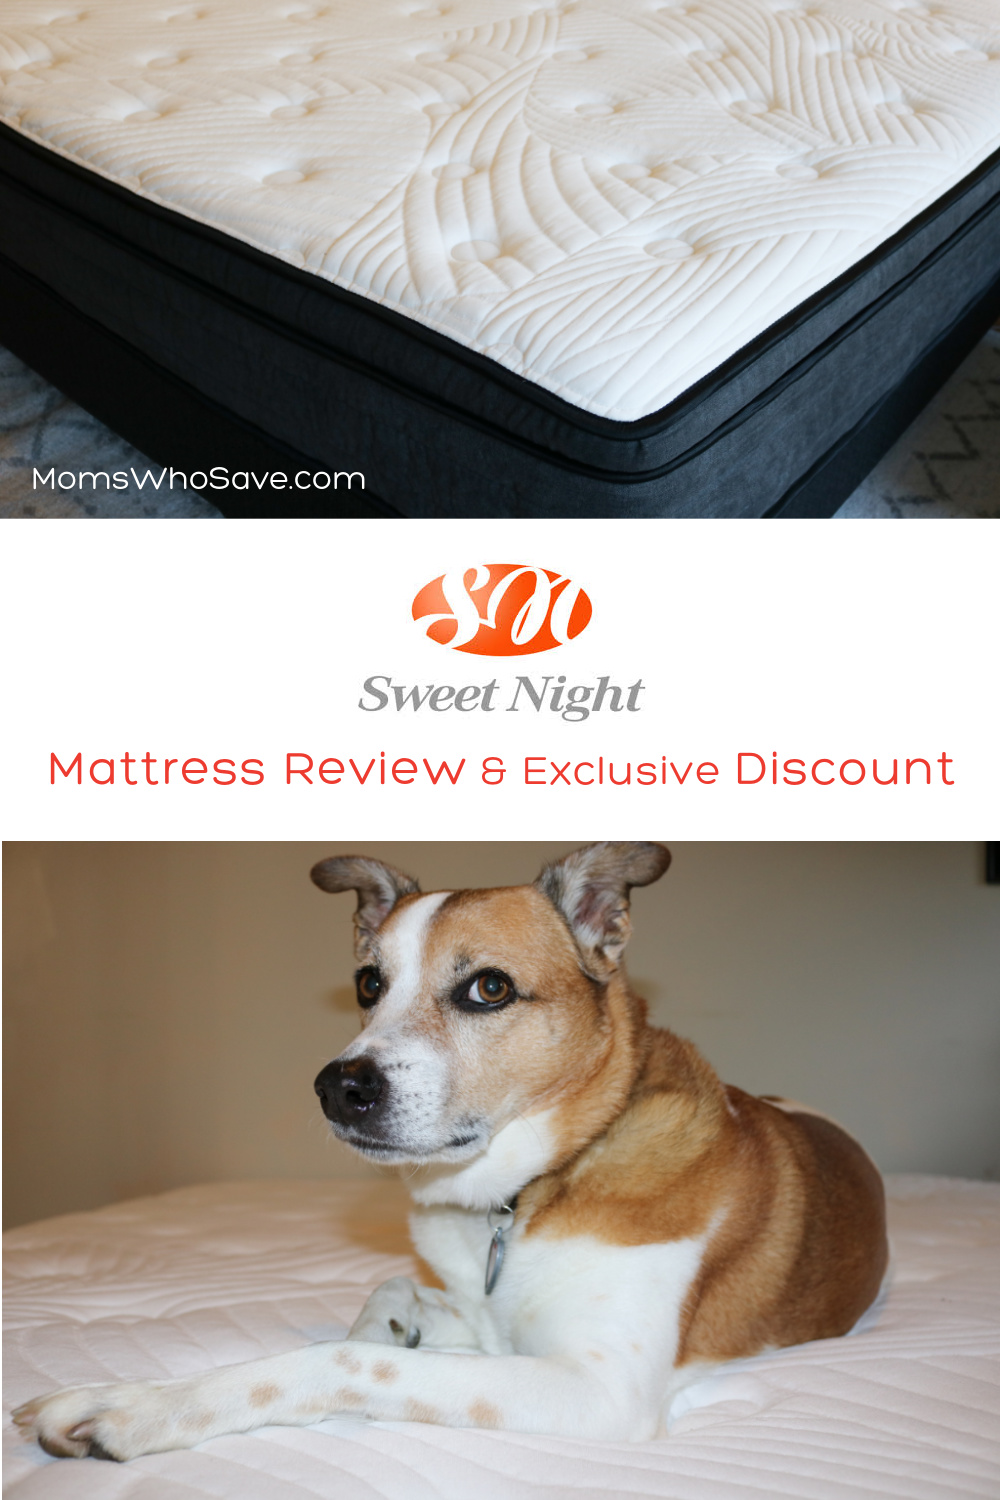 sweet night mattress discount